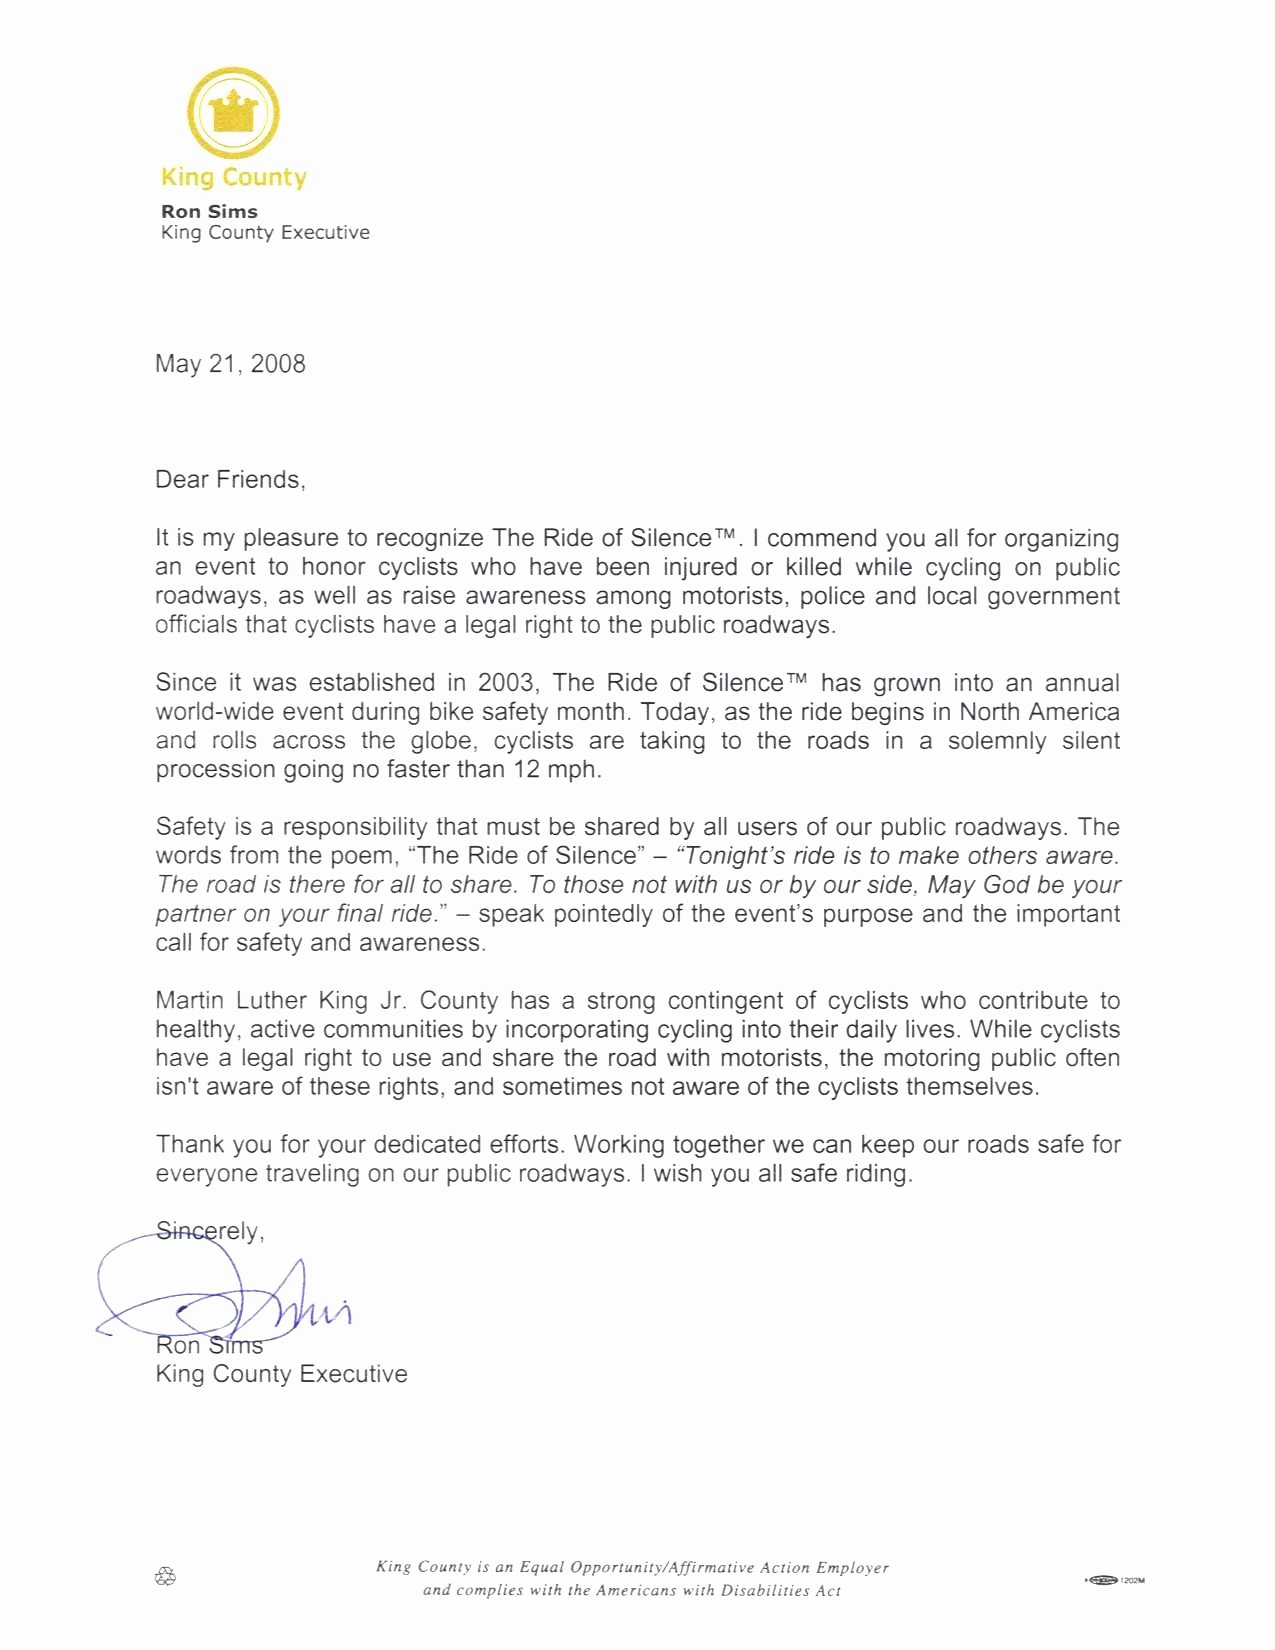 Med School Recommendation Letter Beautiful Sample Medical School Letter Re Mendation From